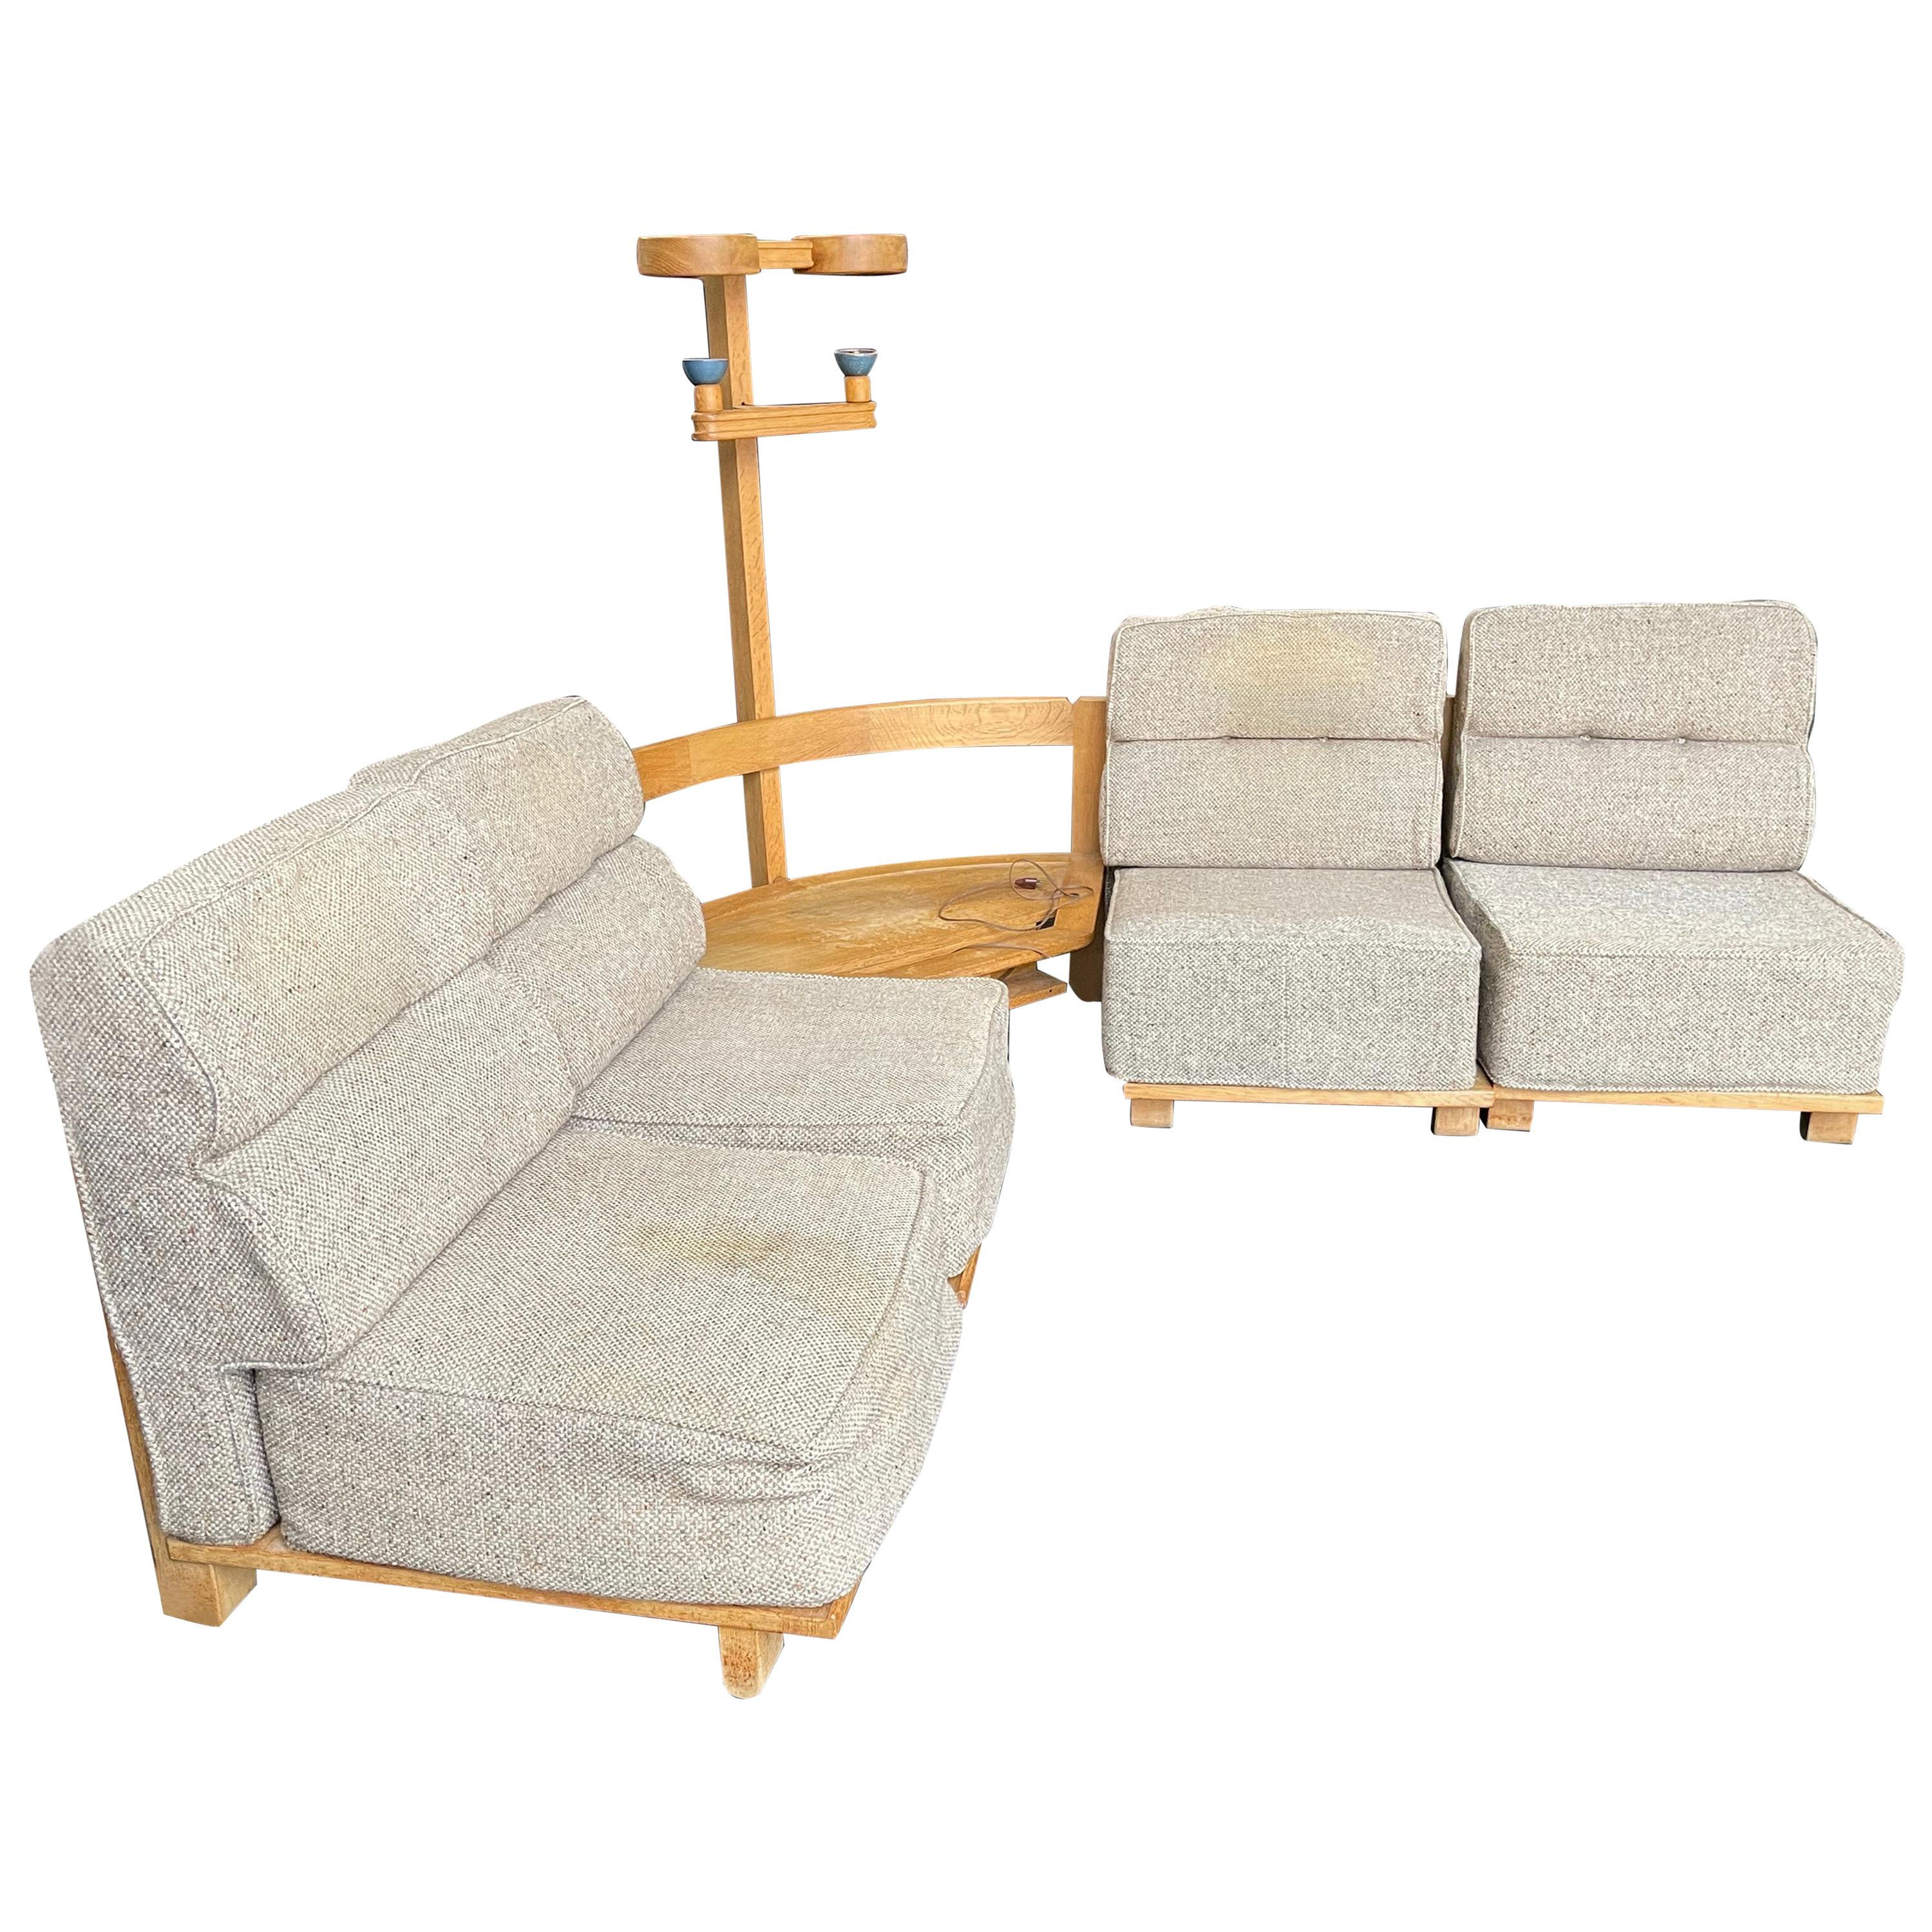 Guillerme et Chambron Sectional Sofas